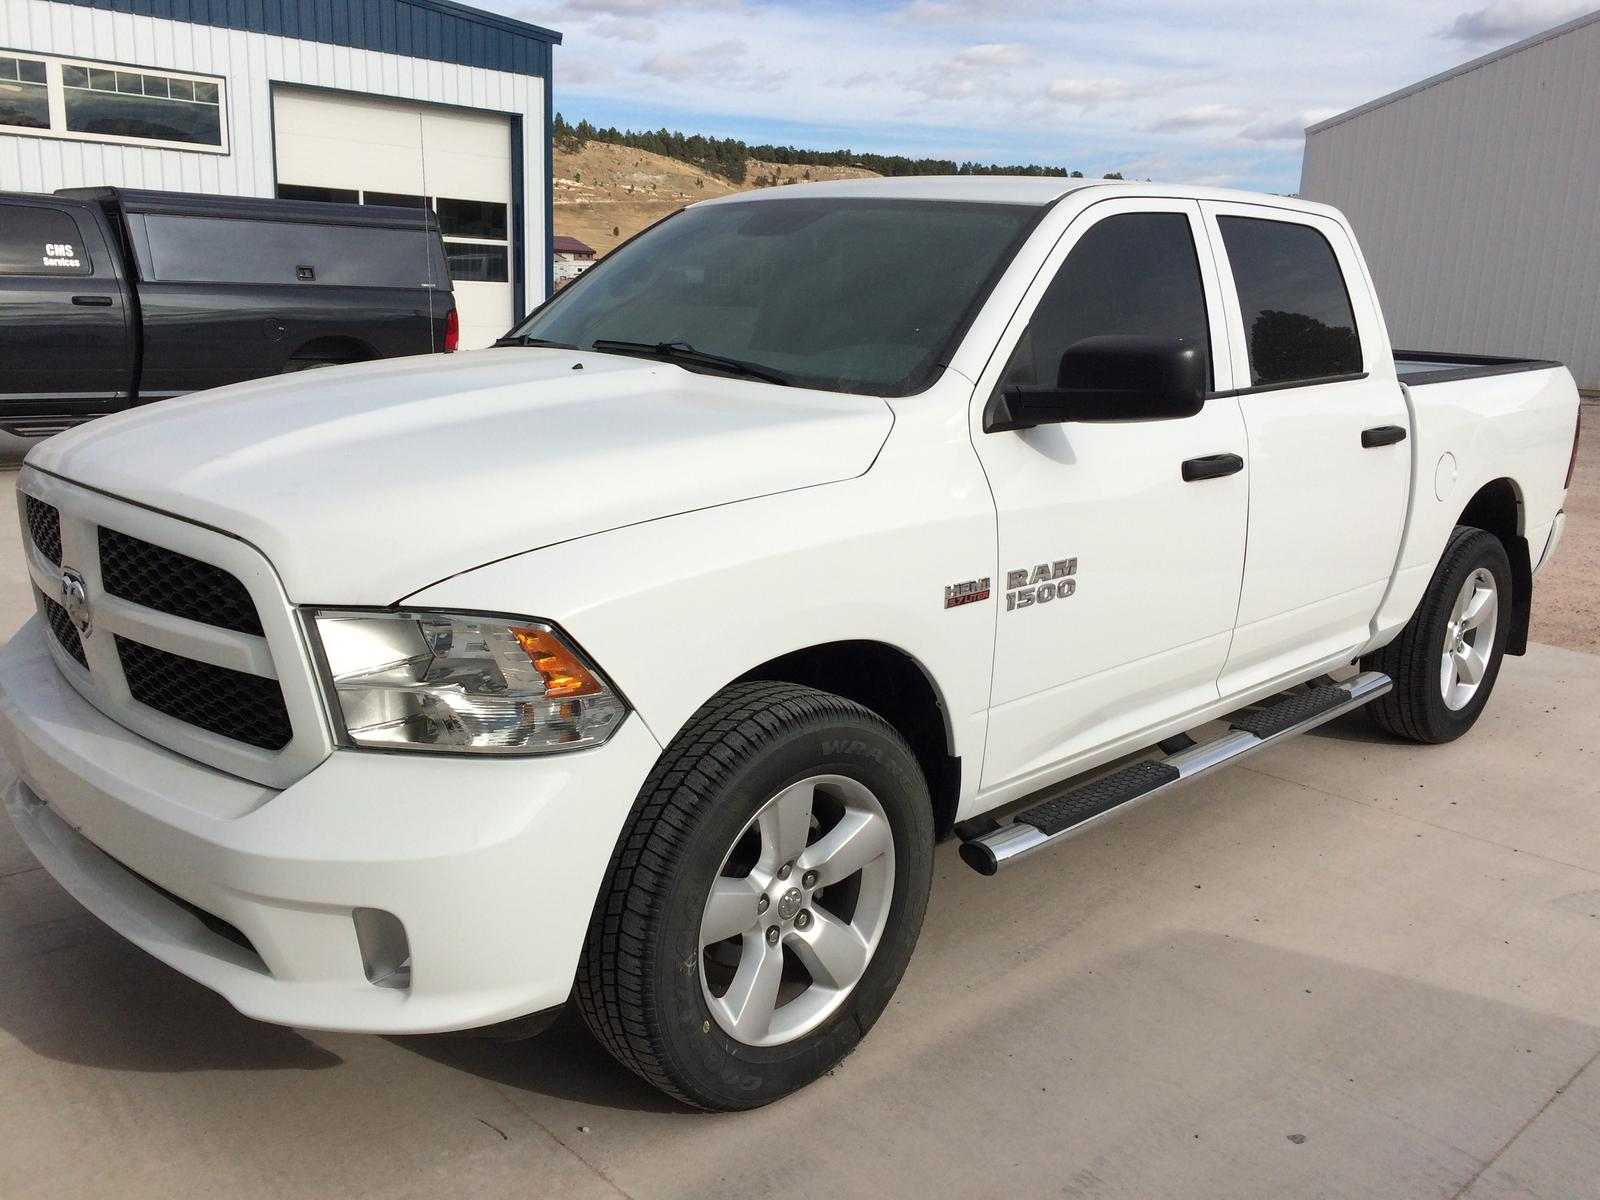 2015 Dodge Ram 1500 4x4 For Sale In Black Hawk Sd Interstate Auto